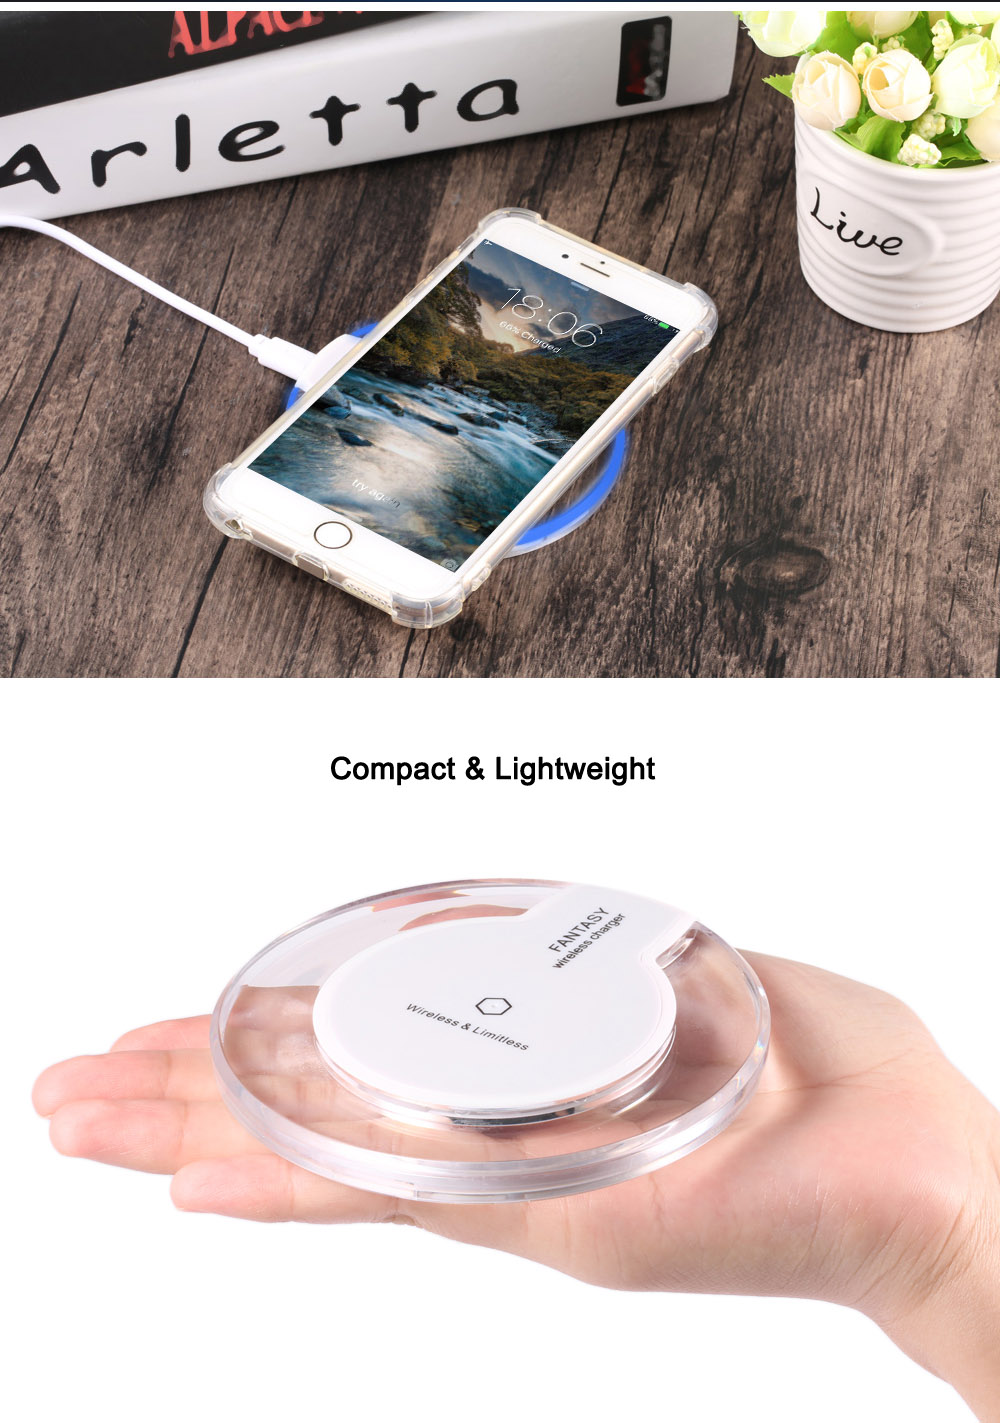 Crystal Clear Qi Wireless Charger + Charging Receiver + Transparent Protection Shell for iPhone 6 / 6S